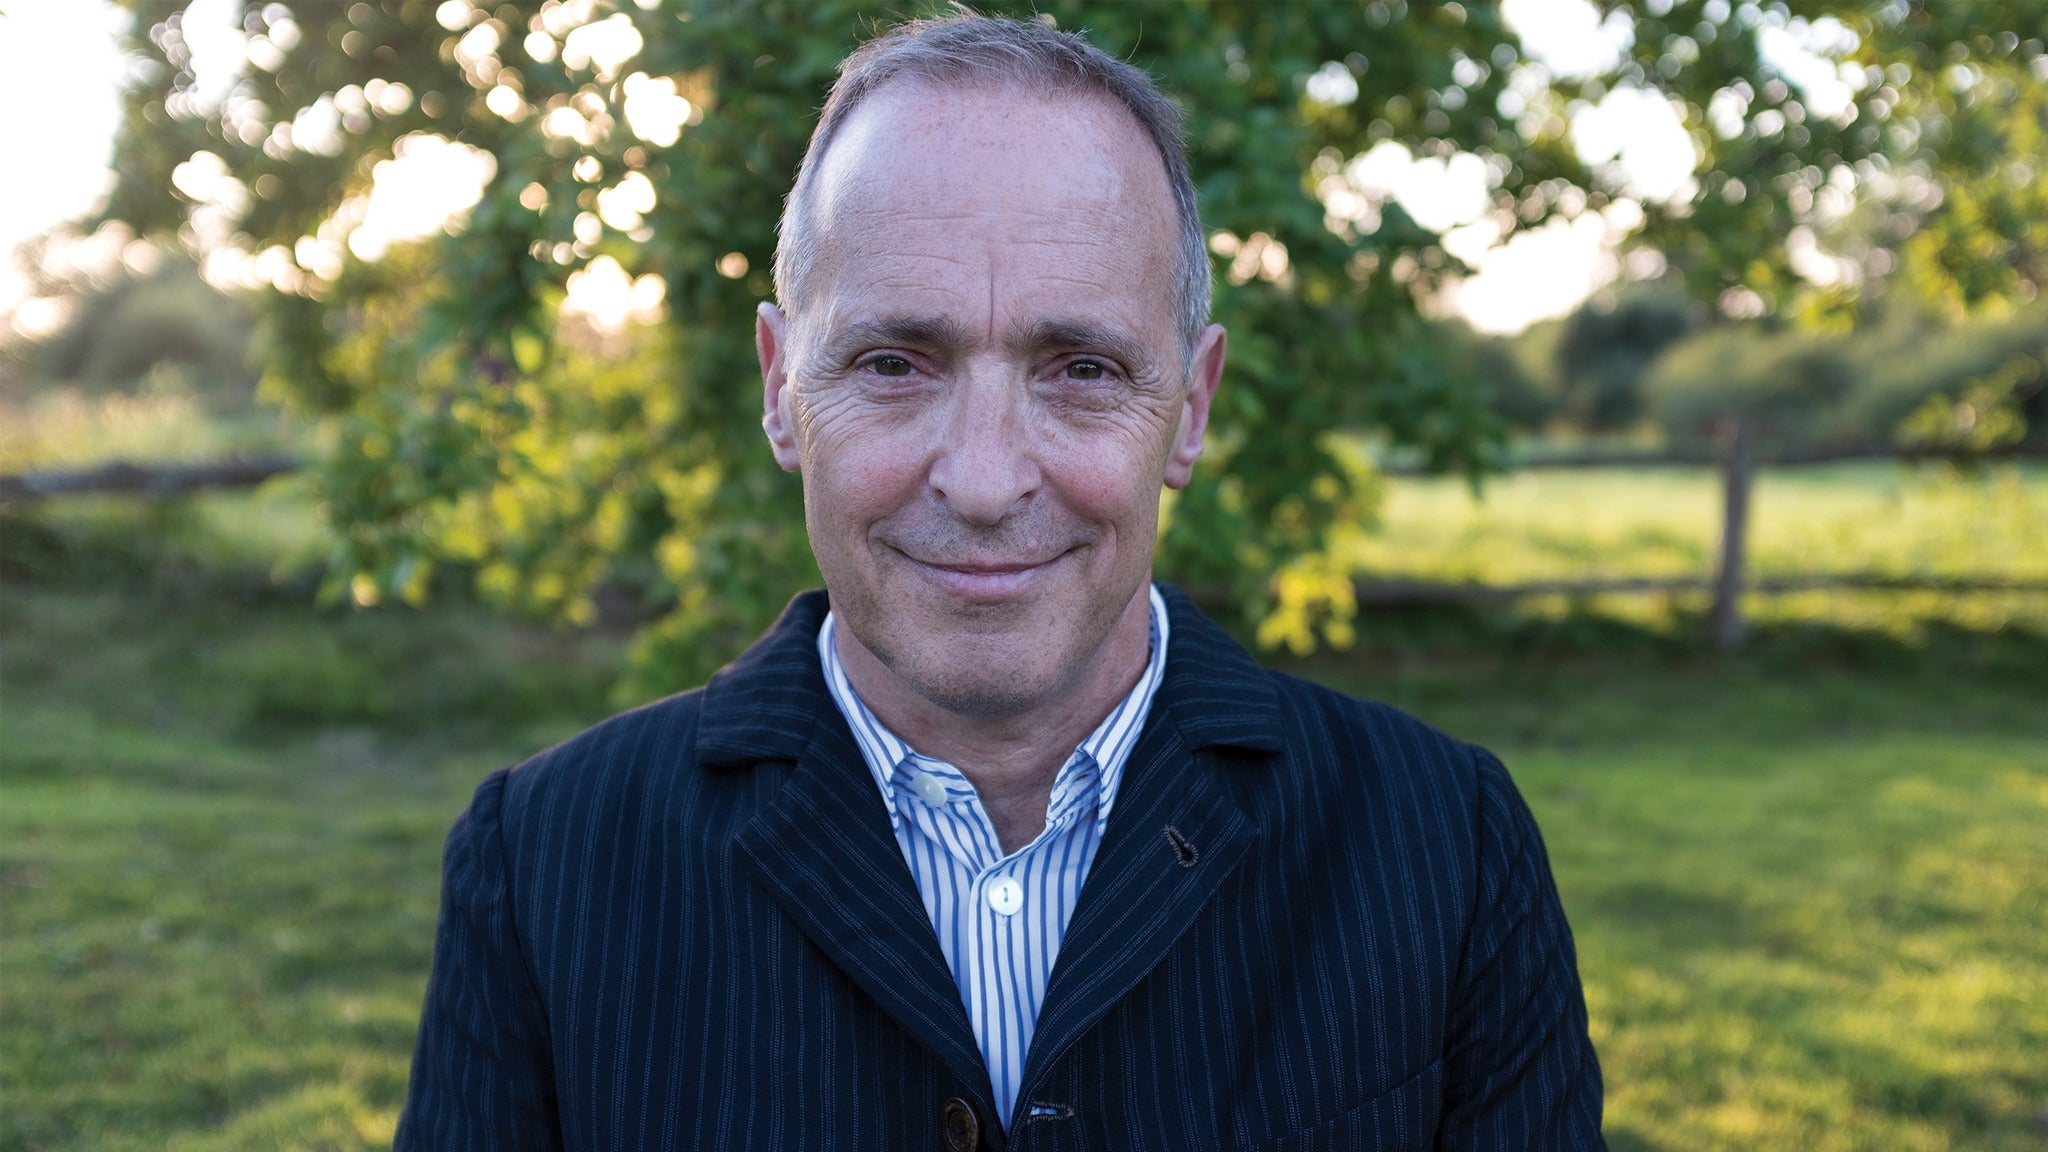 An Evening With David Sedaris at Kalamazoo State Theatre